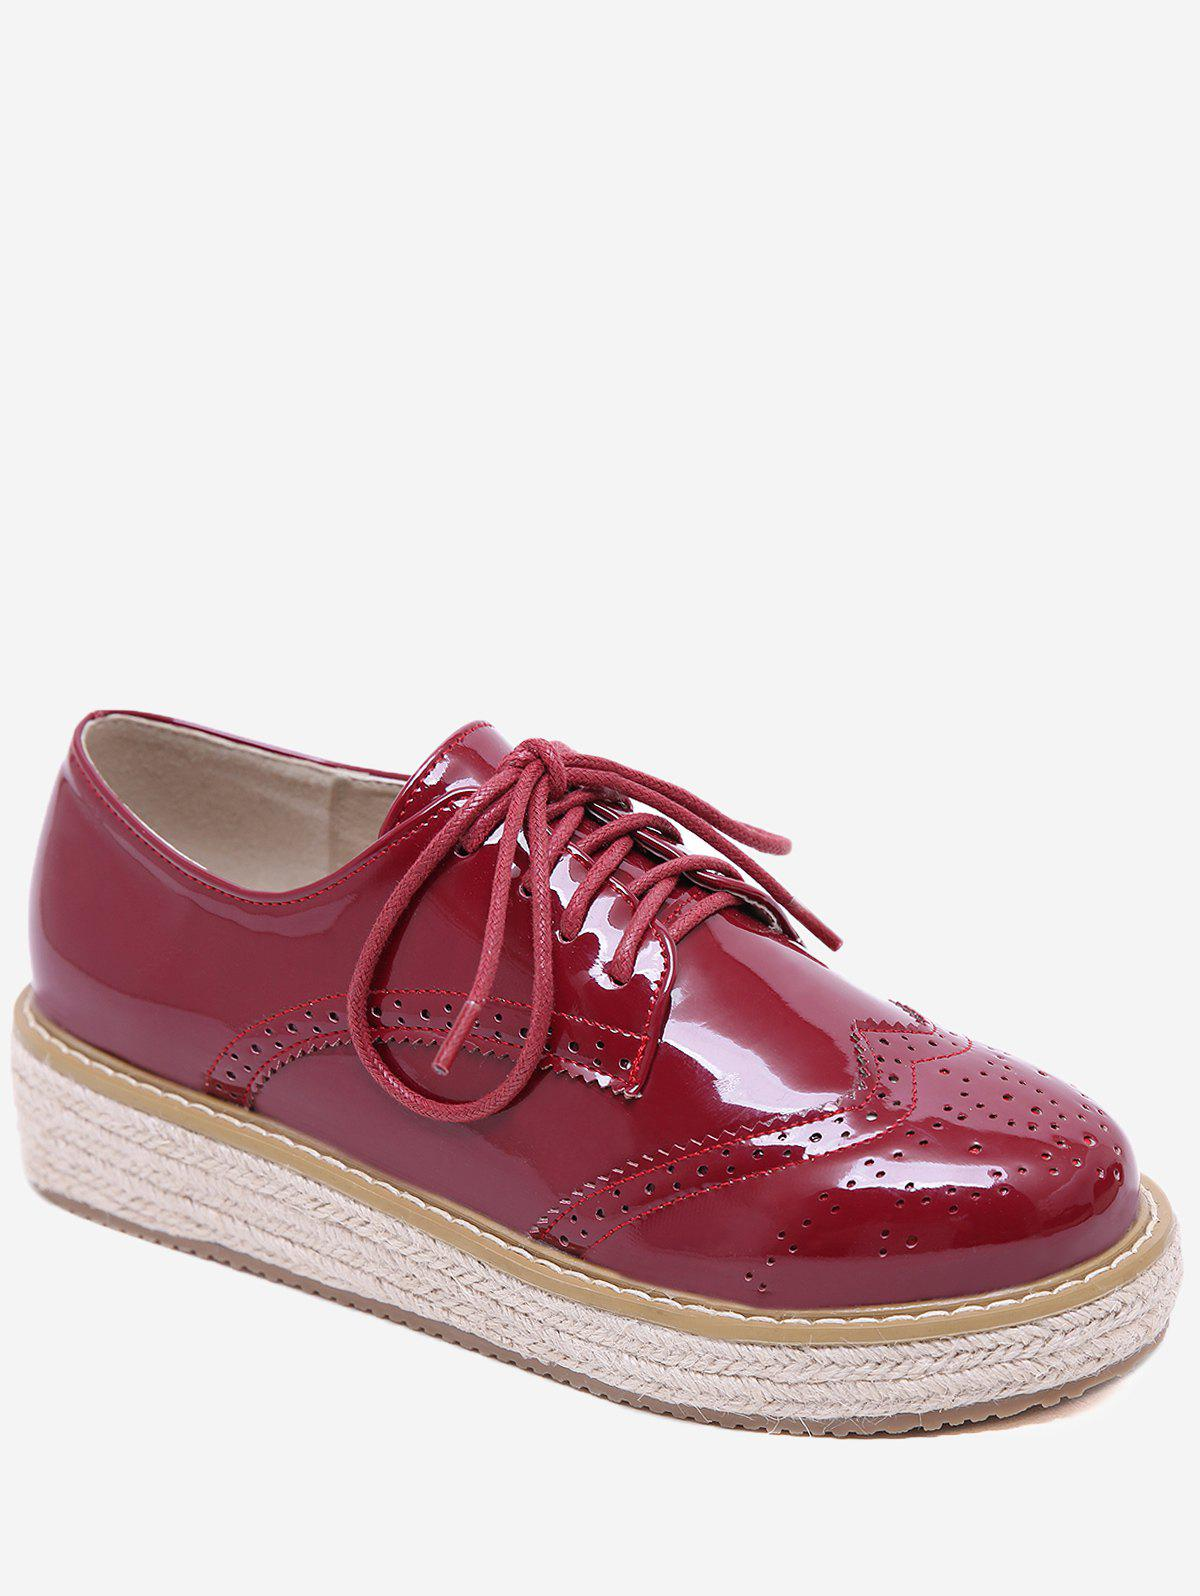 Lace Up Espadrilles Platform Sneakers - CHESTNUT RED 36